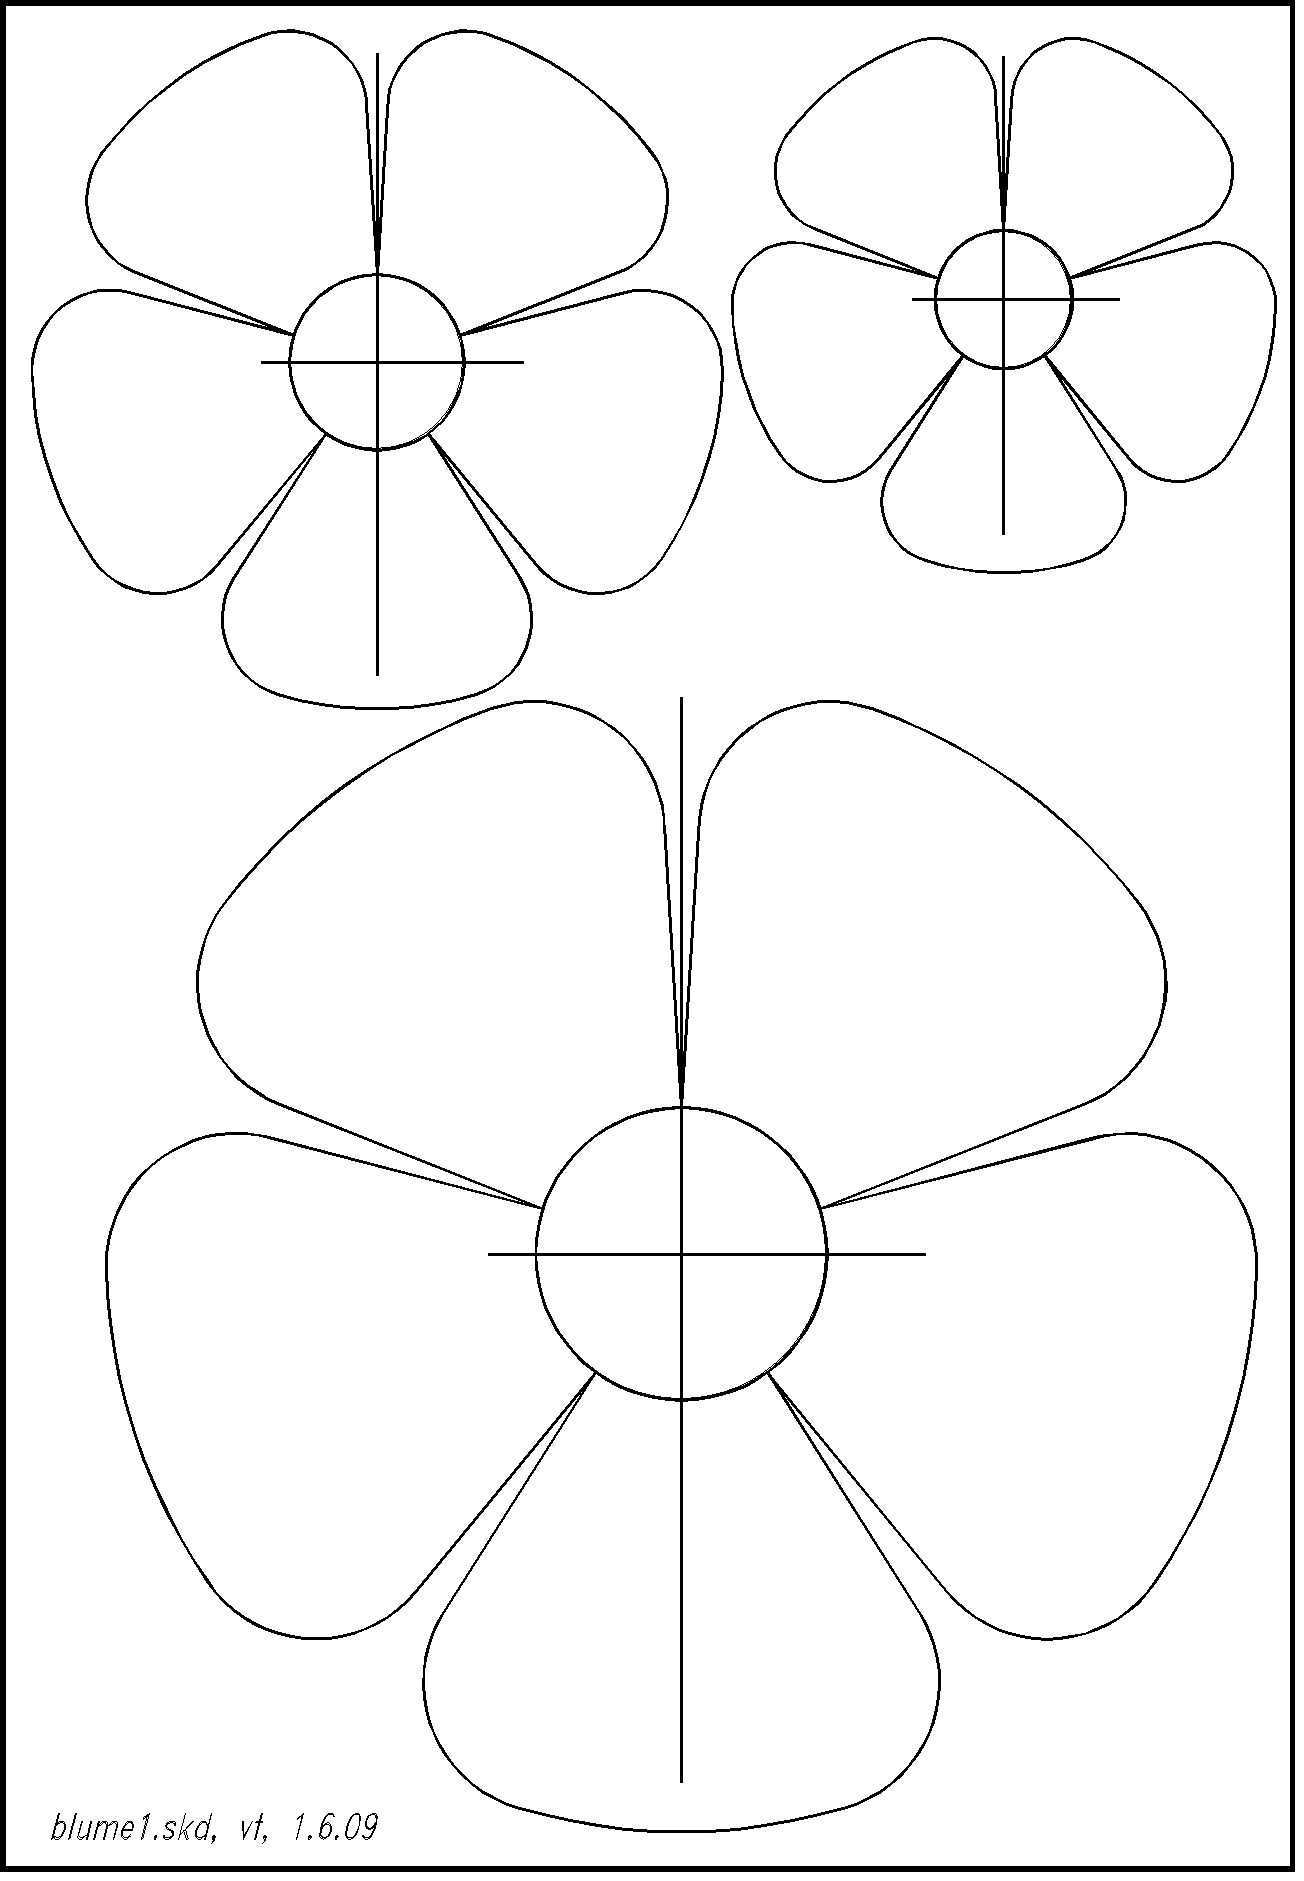 Pin Von Only Coloring Pages Auf Paper Craft Vorlagen Blumen Basteln Blumen Basteln Blumen Schablone